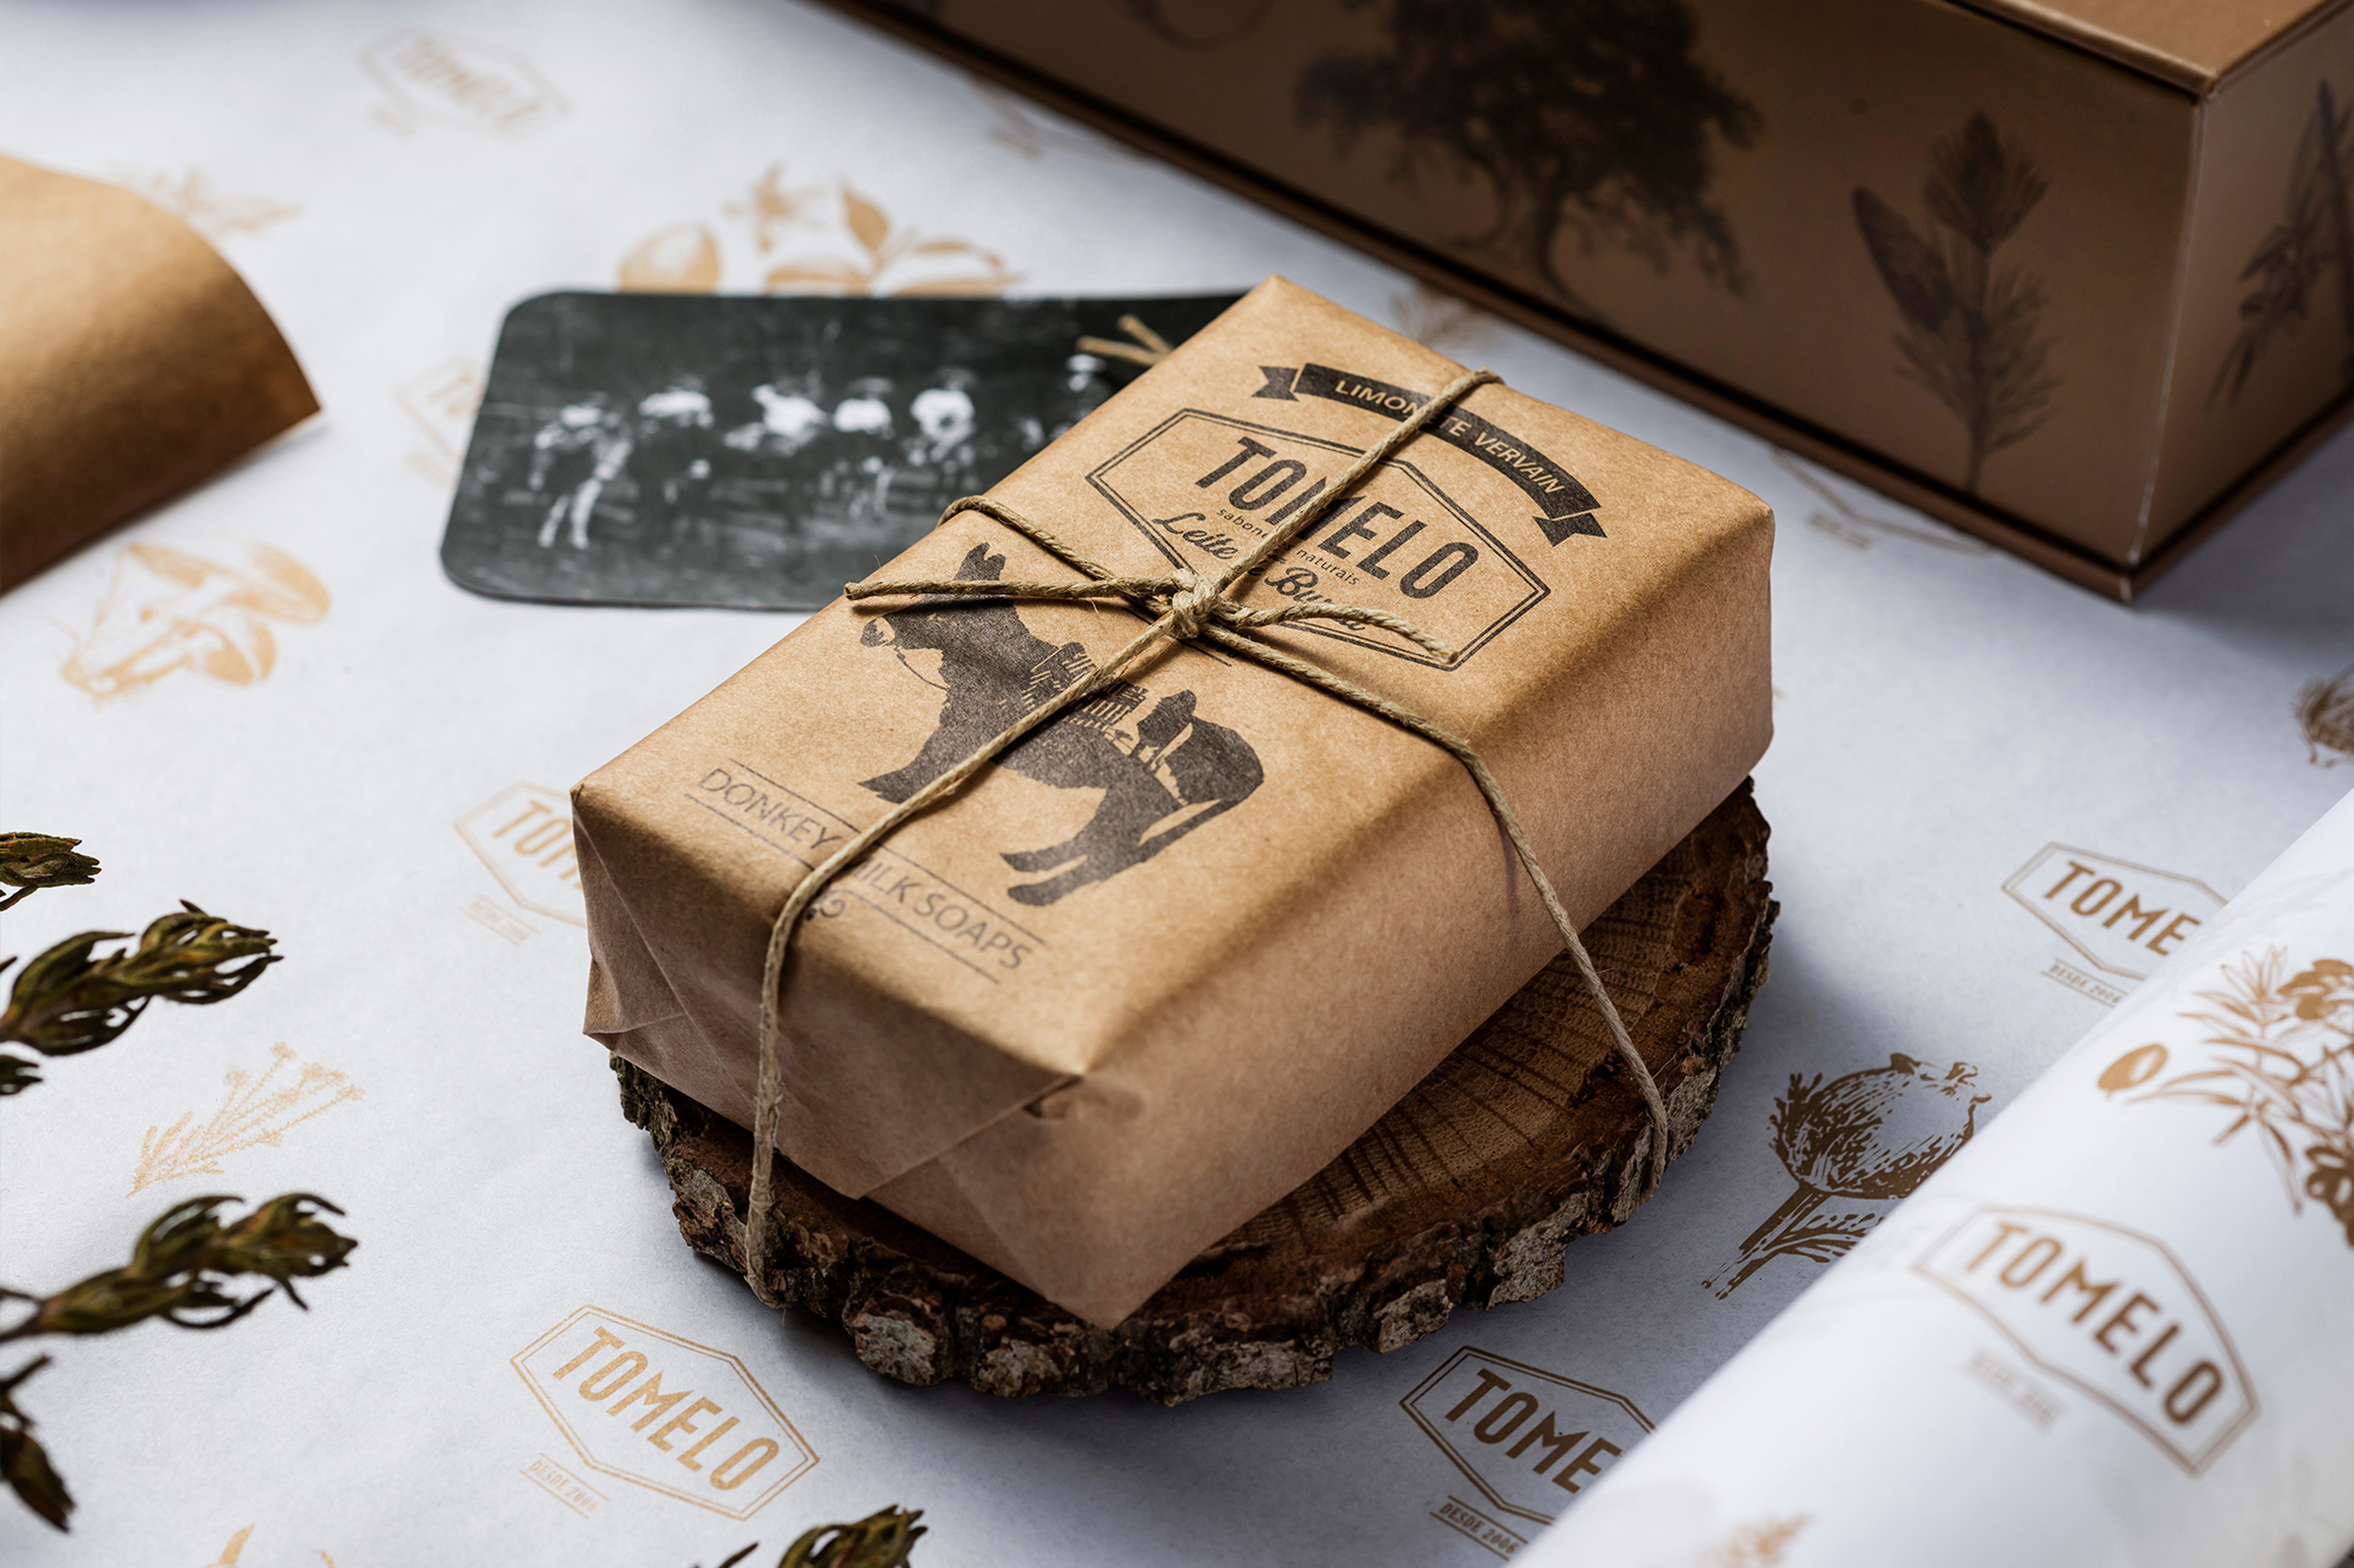 Tomelo Natura Soap  by Paulo Marcelo - Creative Work - $i